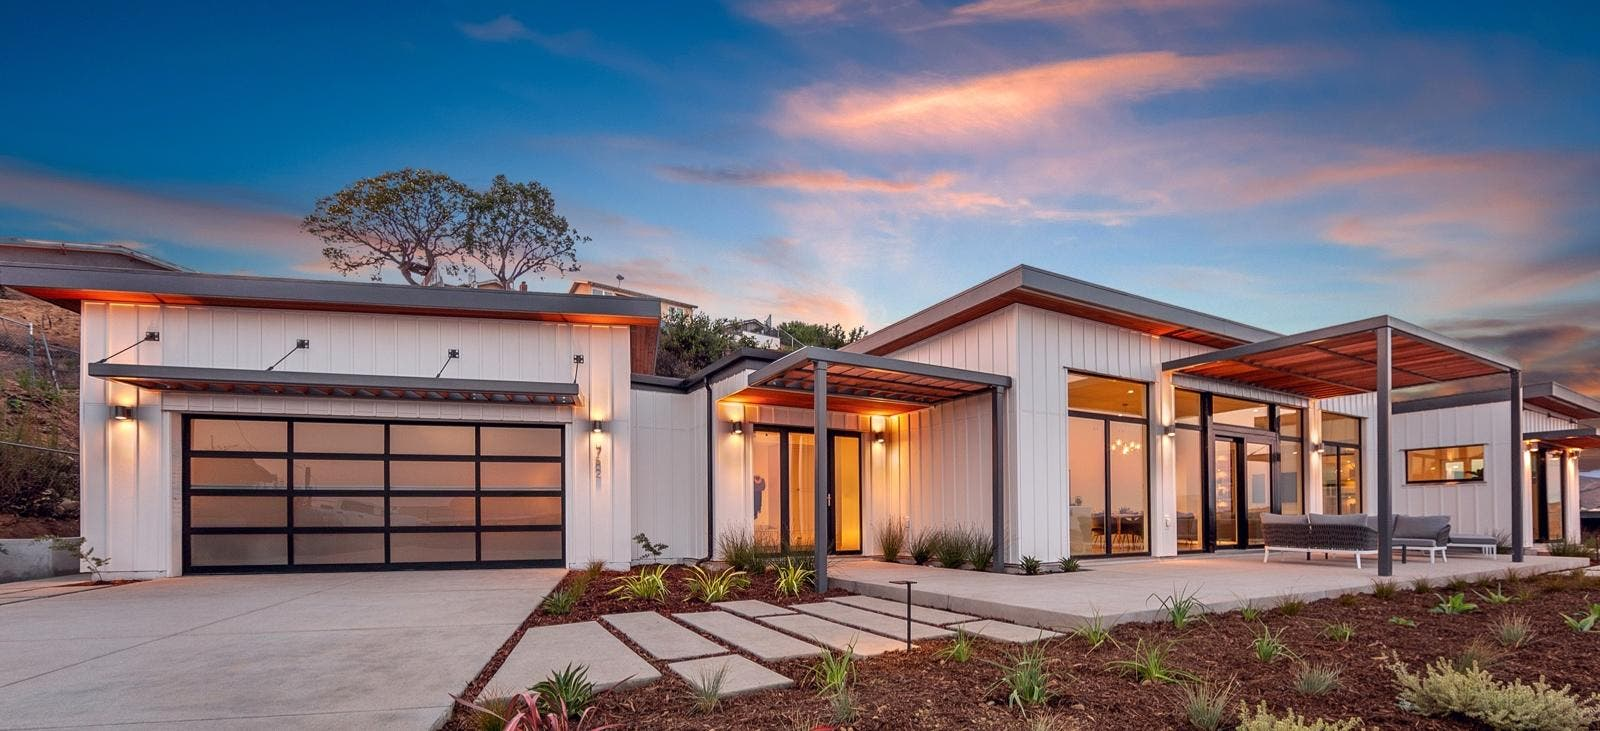 New Prefab Homes Never Need To Be Connected To The Grid | CleanTechnica